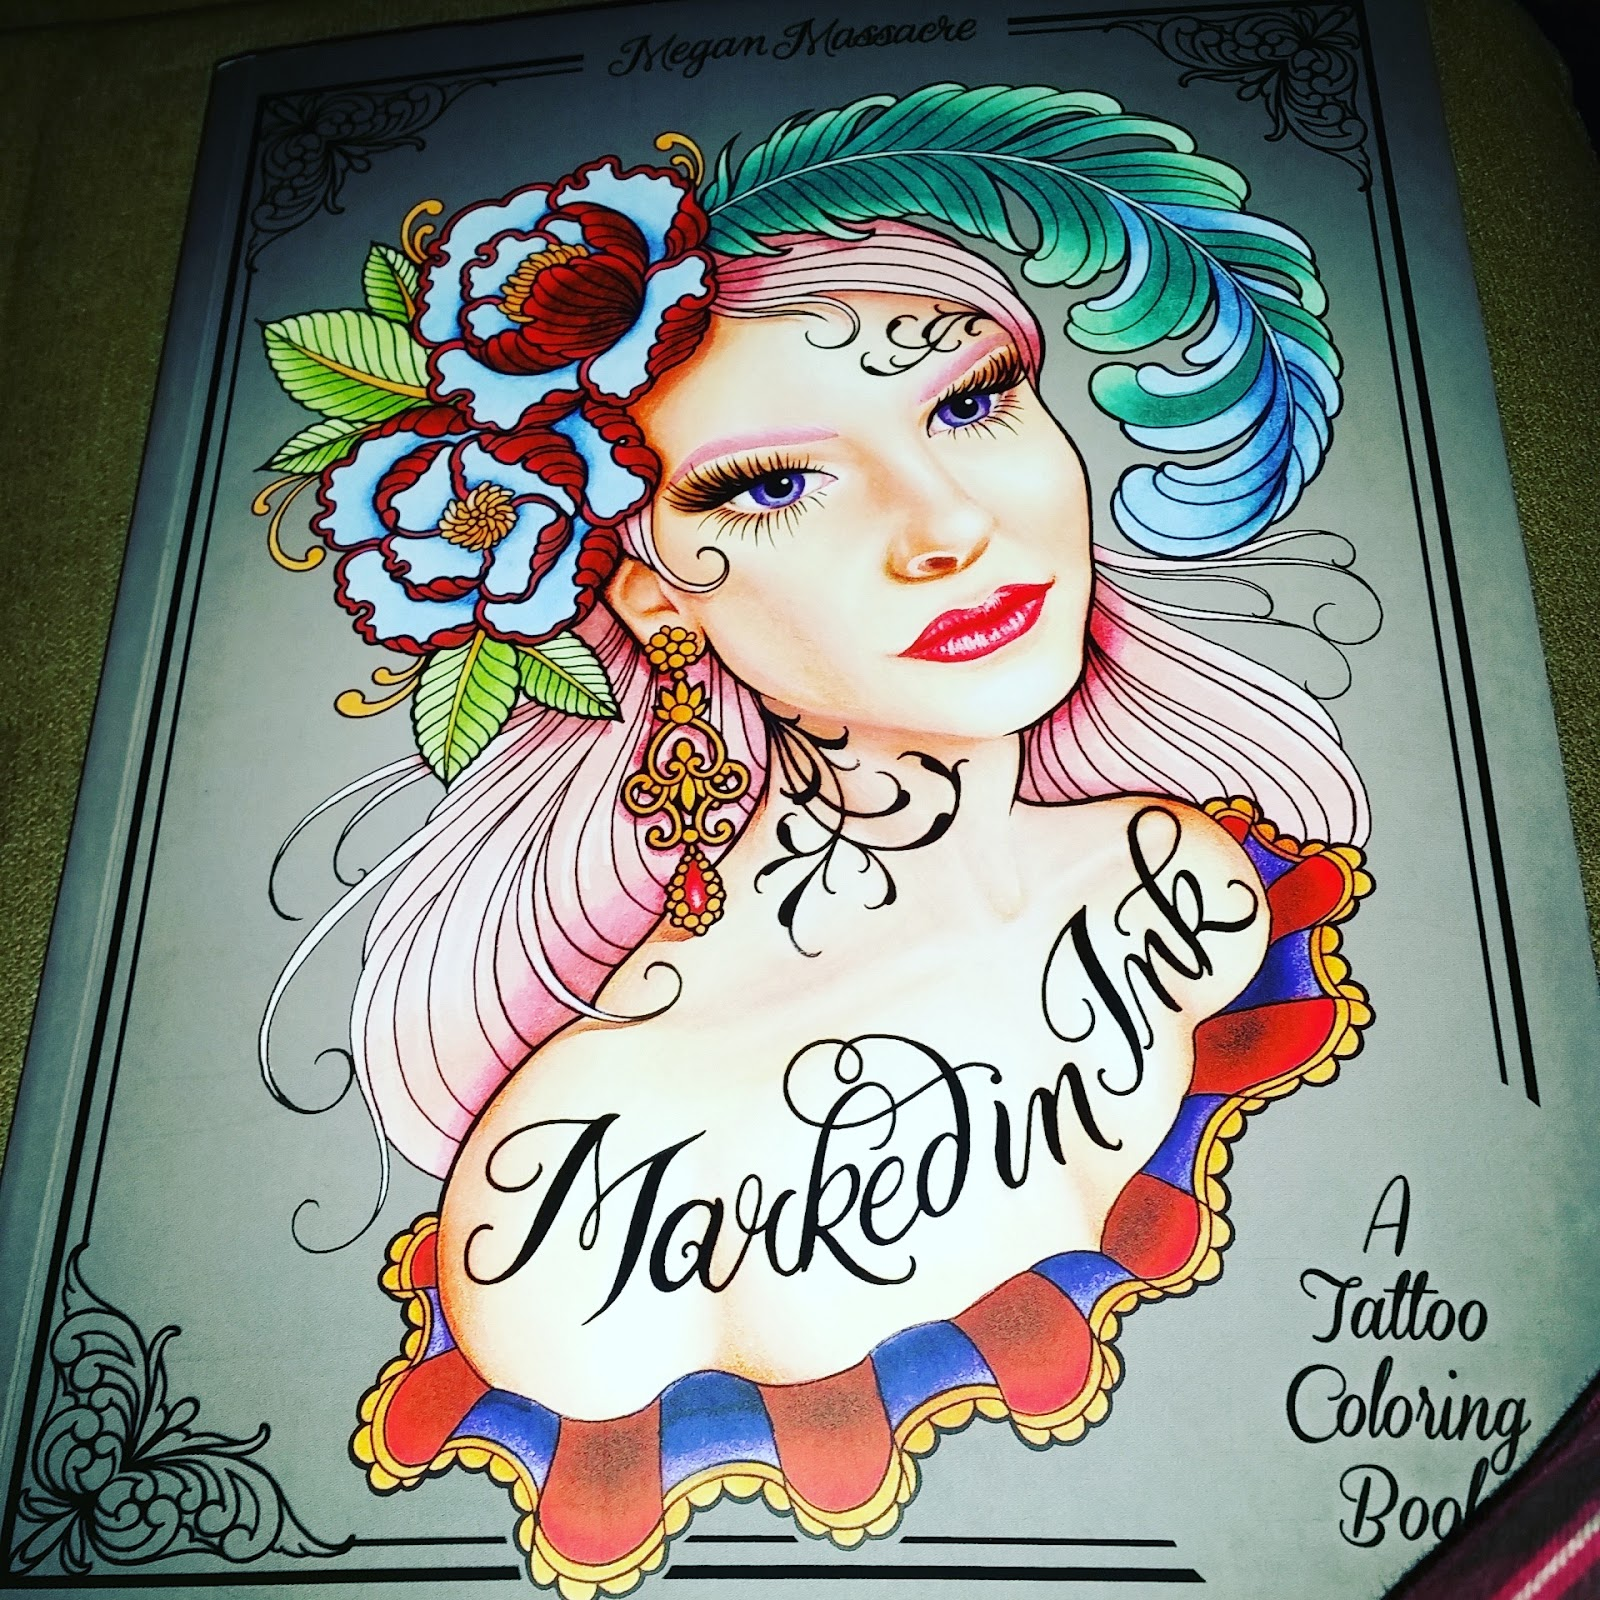 Tattoo Coloring Book Mini Review